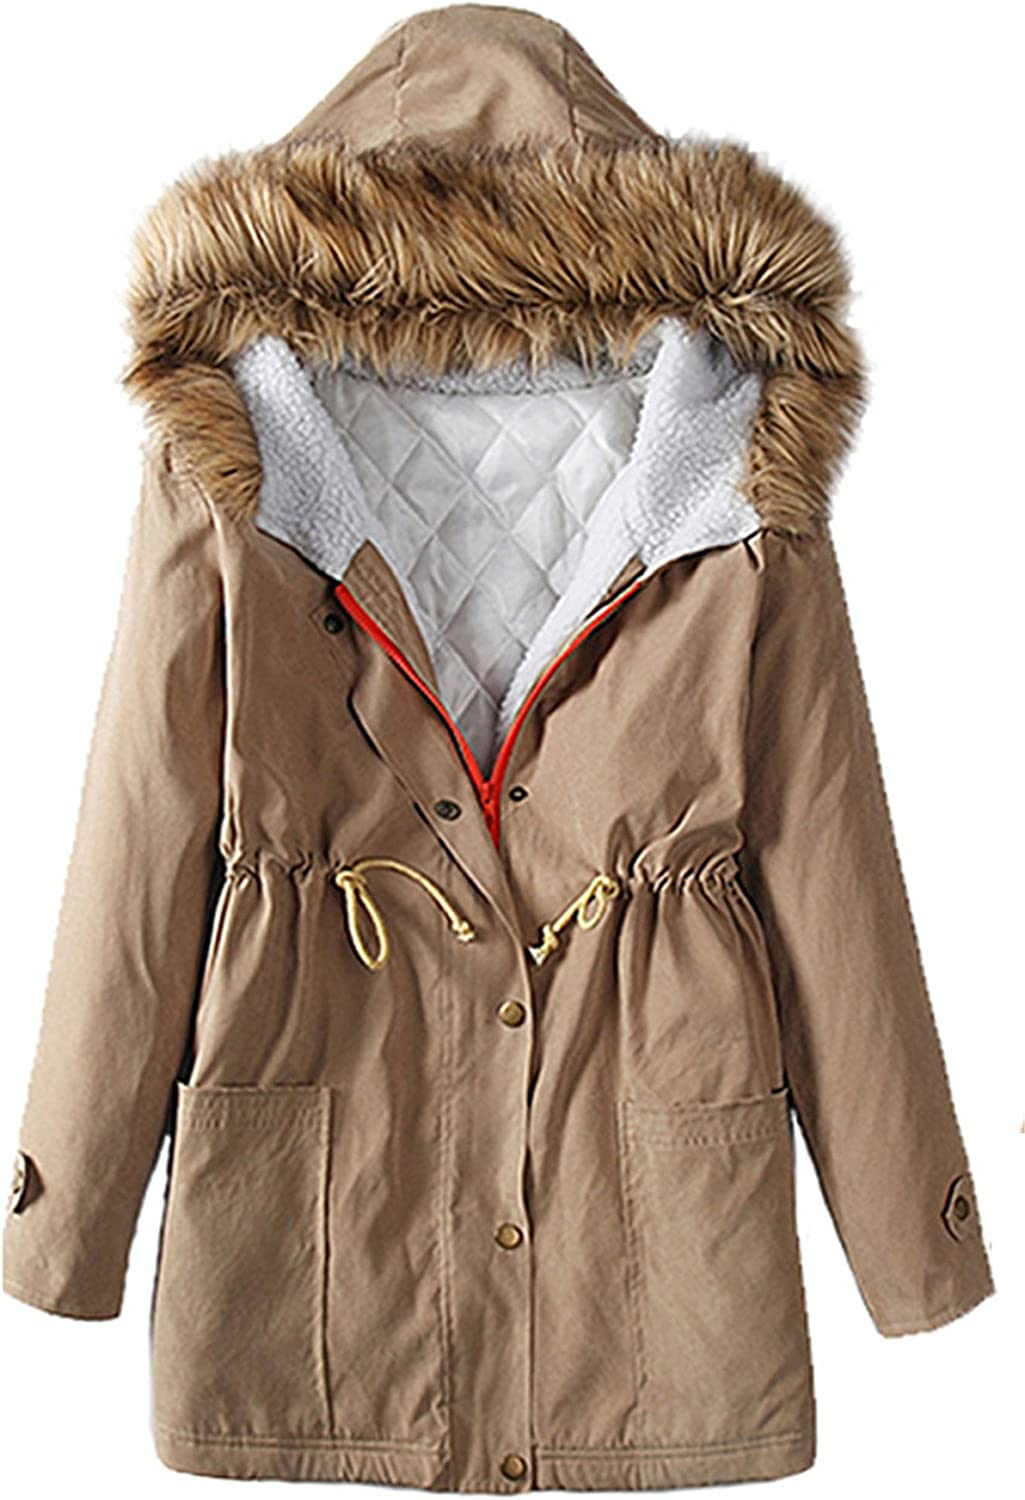 Allonly Women's Cotton Drawstring Waist Thicken Coat Overcoat With Faux Fur Hood